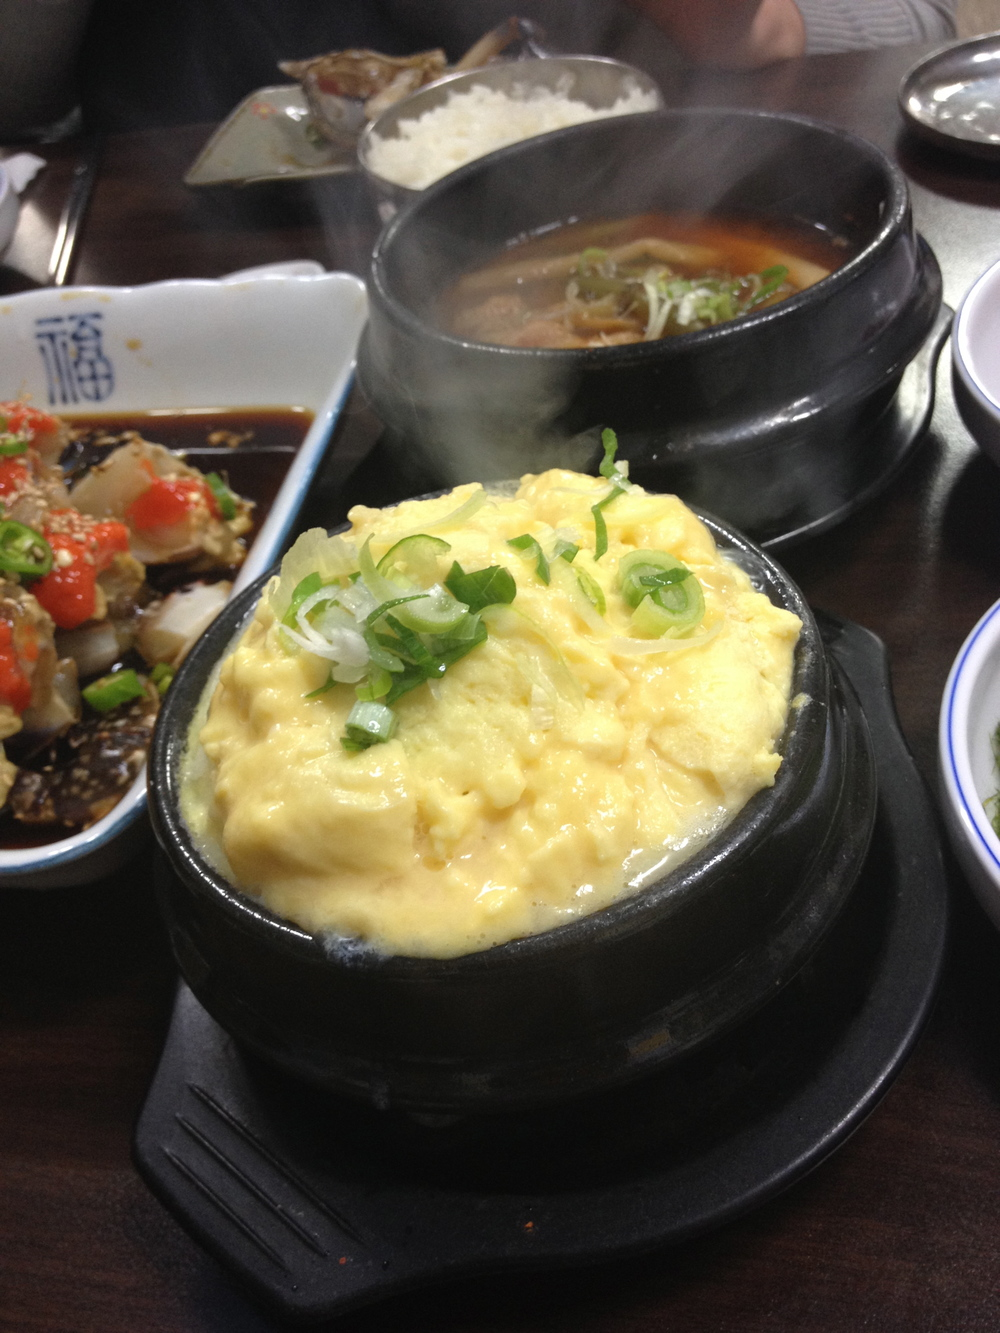 The meal also comes with a steamed egg dish in case the crab and rice isn't enough to fill you up. You have the option to also add on another soup, but there is one that comes with the meal to share included as well.